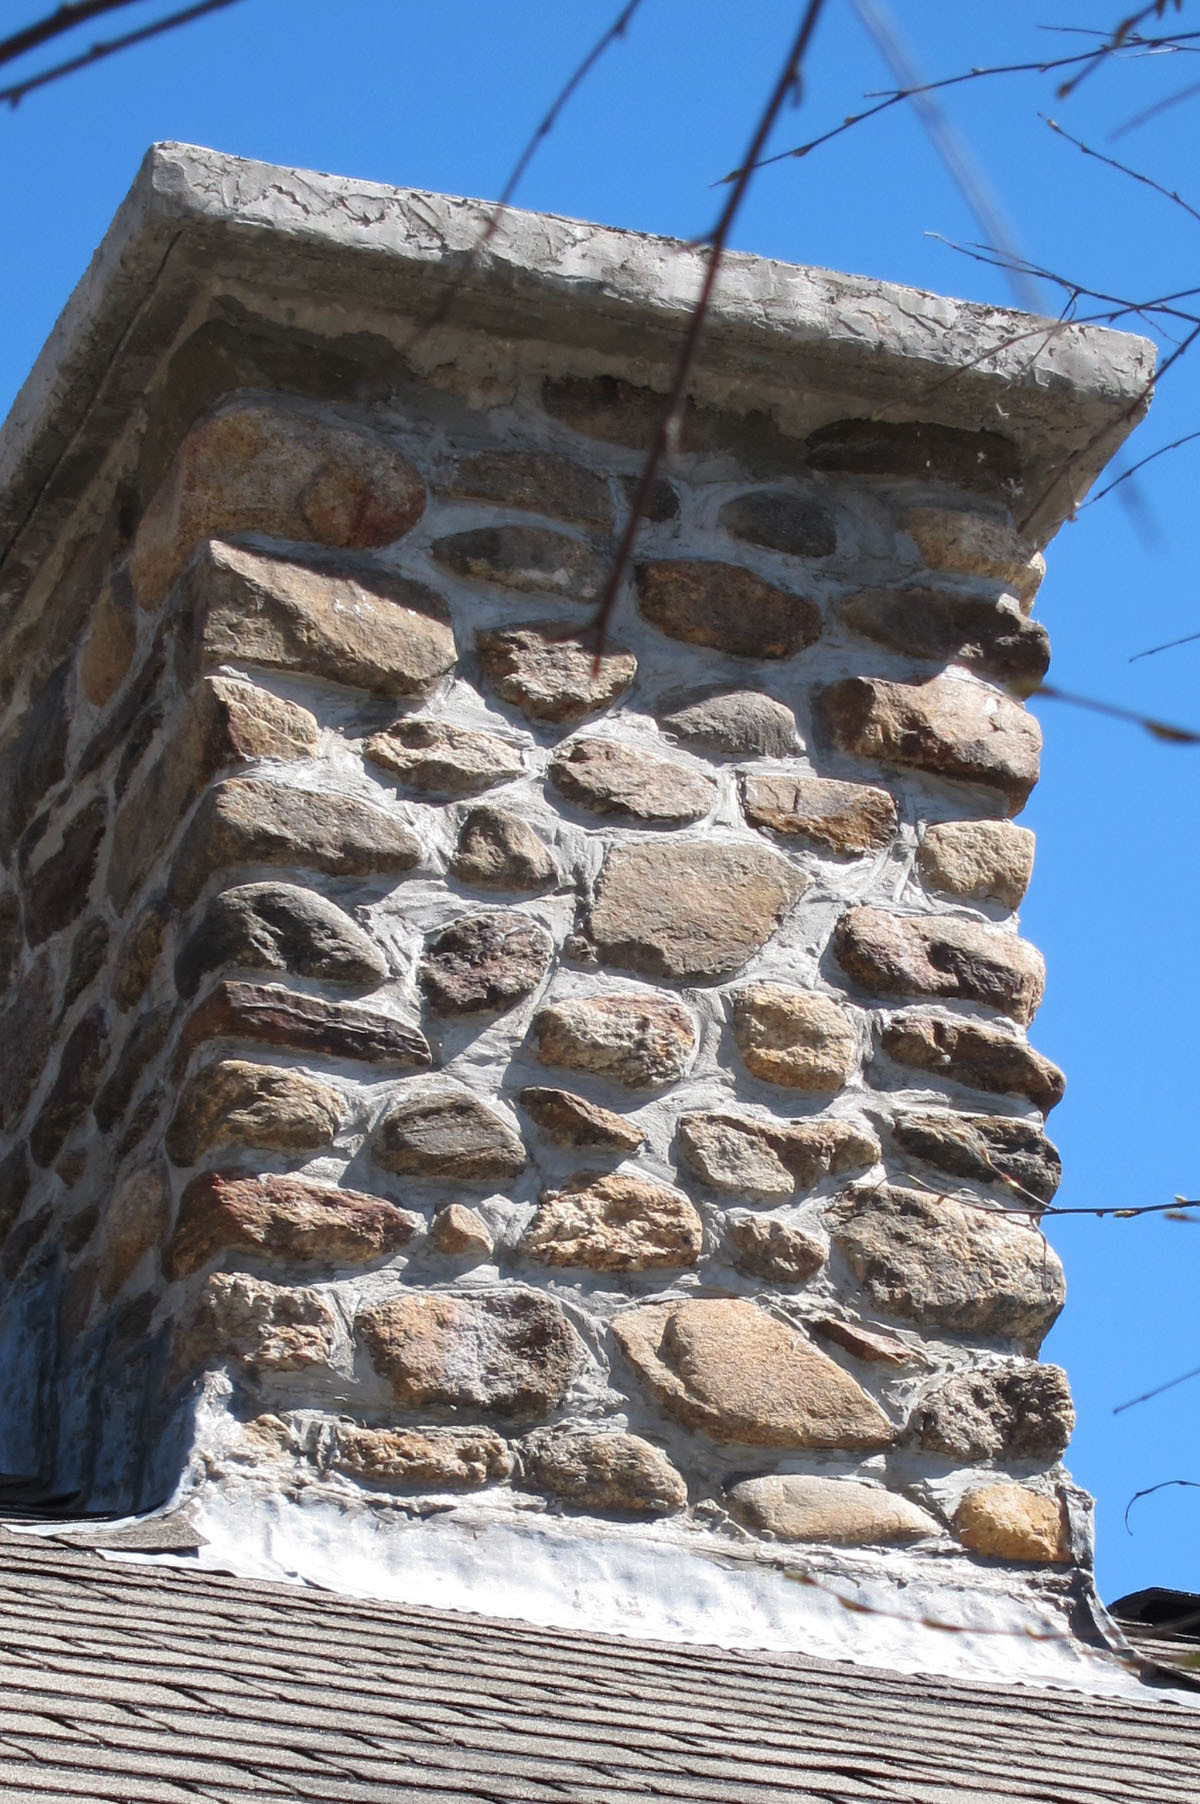 This stone chimney has a properly constructed top or crown. You can even see the drip groove under the overhang.